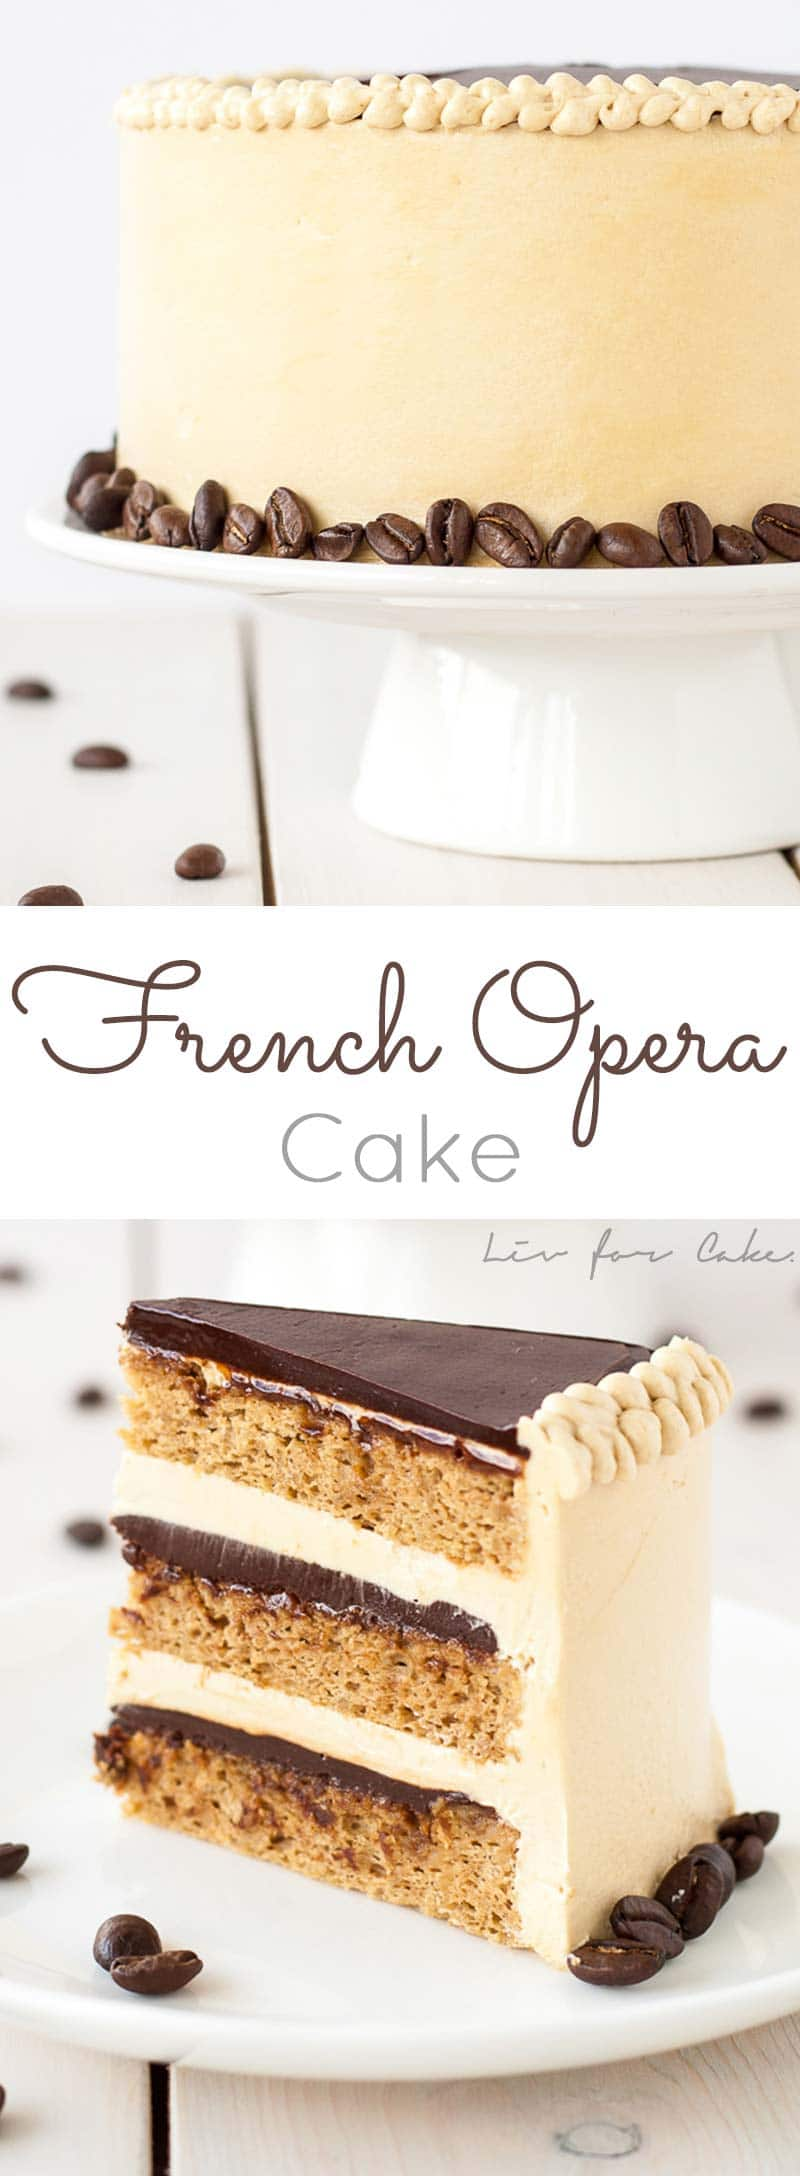 French Opera Cake collage